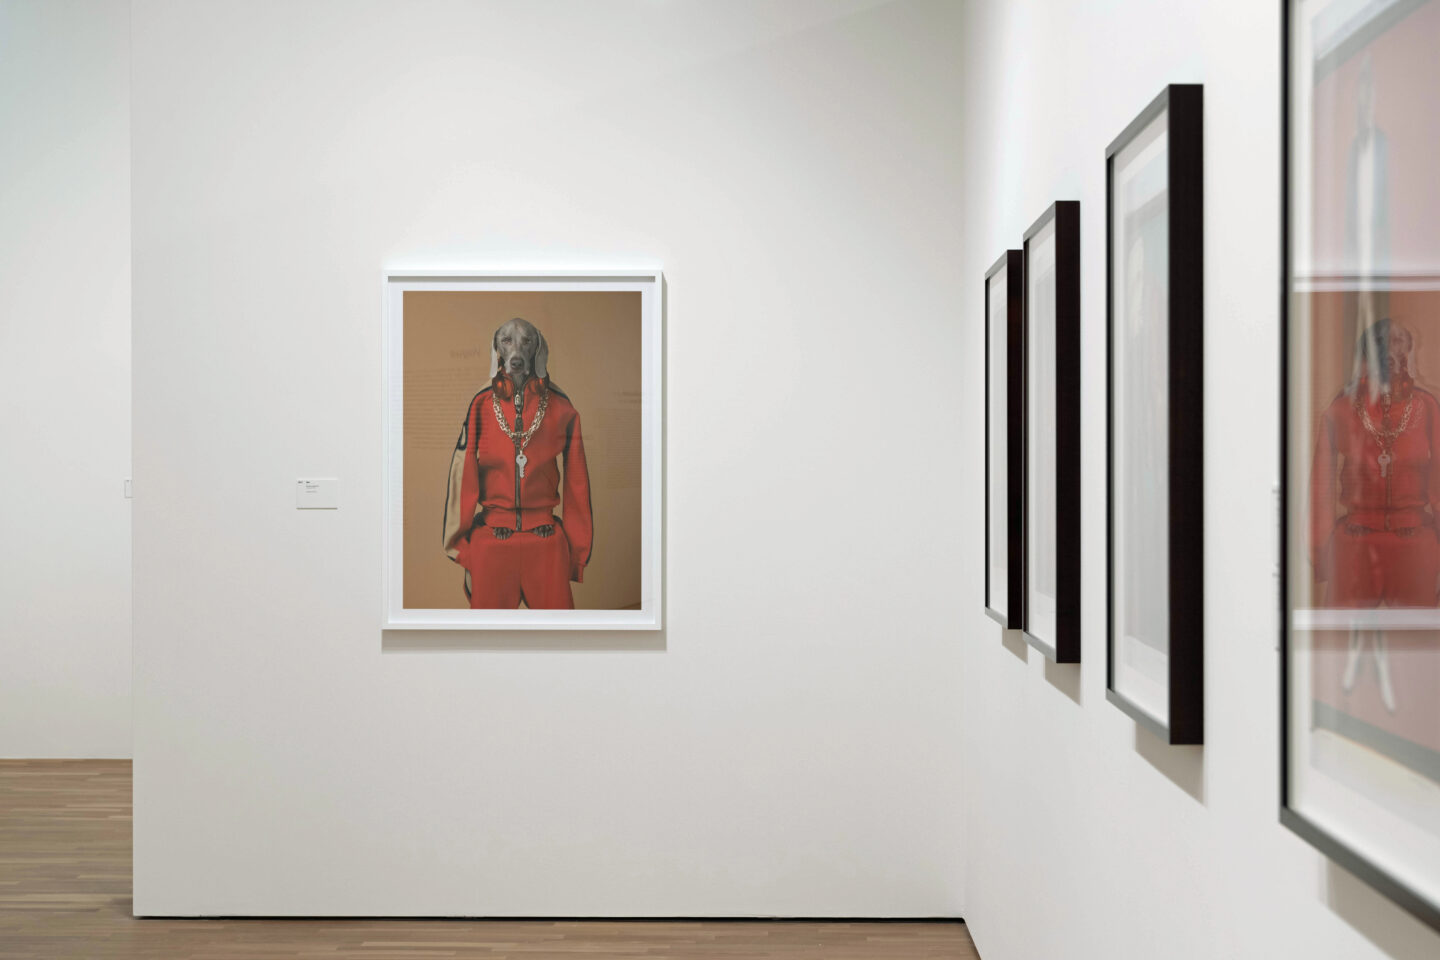 Exhibition View William Wegman Soloshow «Being Human» at MASI, Lugano, 2019 / Courtesy: the artist and MASI, Lugano